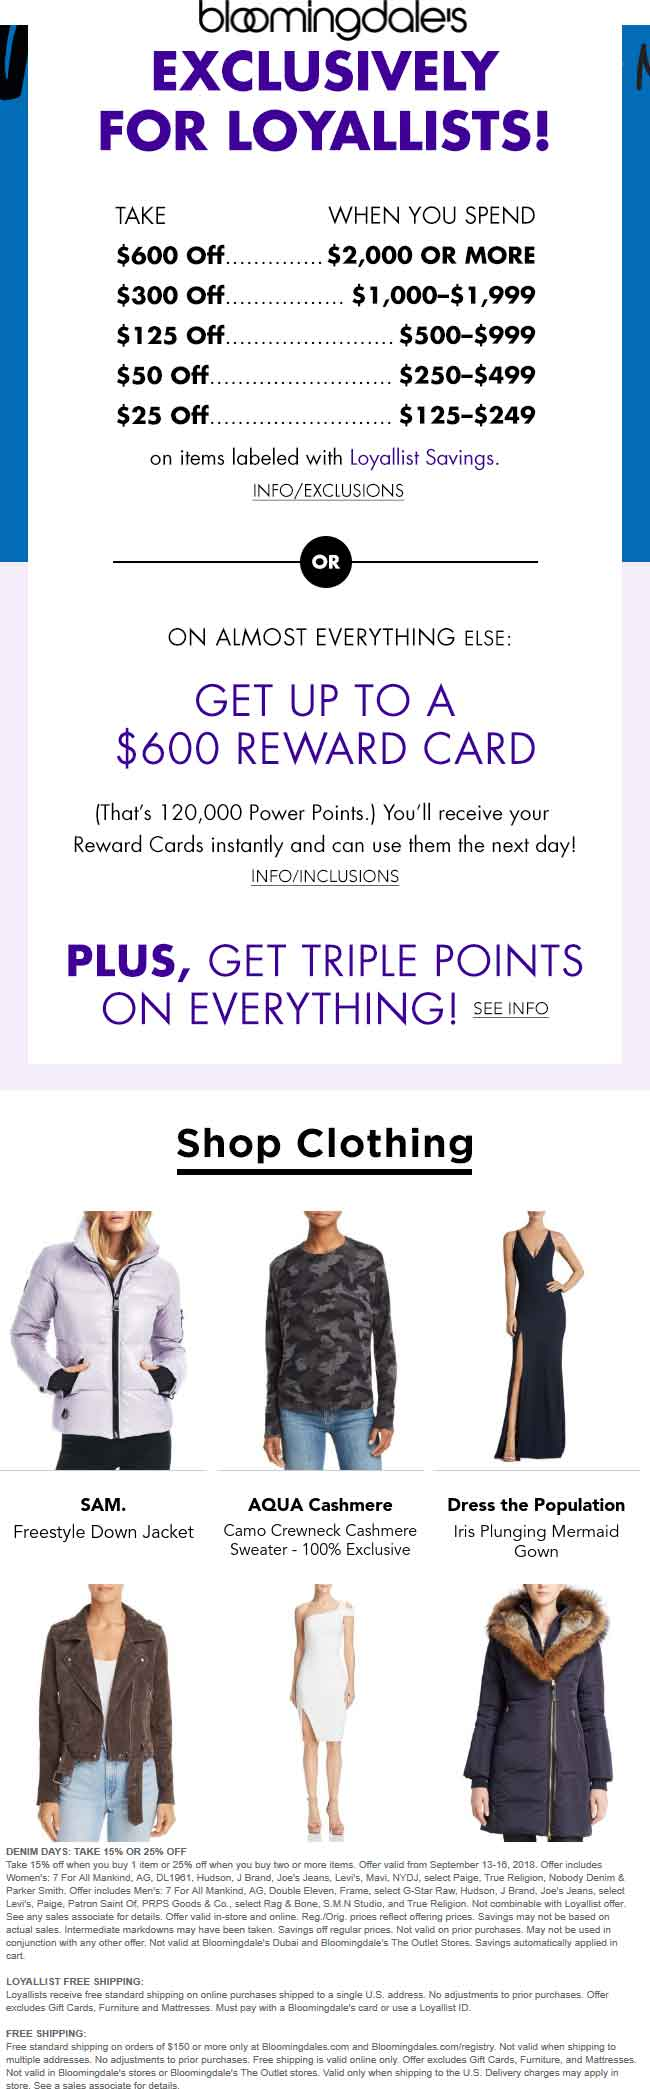 Bloomingdales.com Promo Coupon $25-$600 off $125+ at Bloomingdales, ditto online